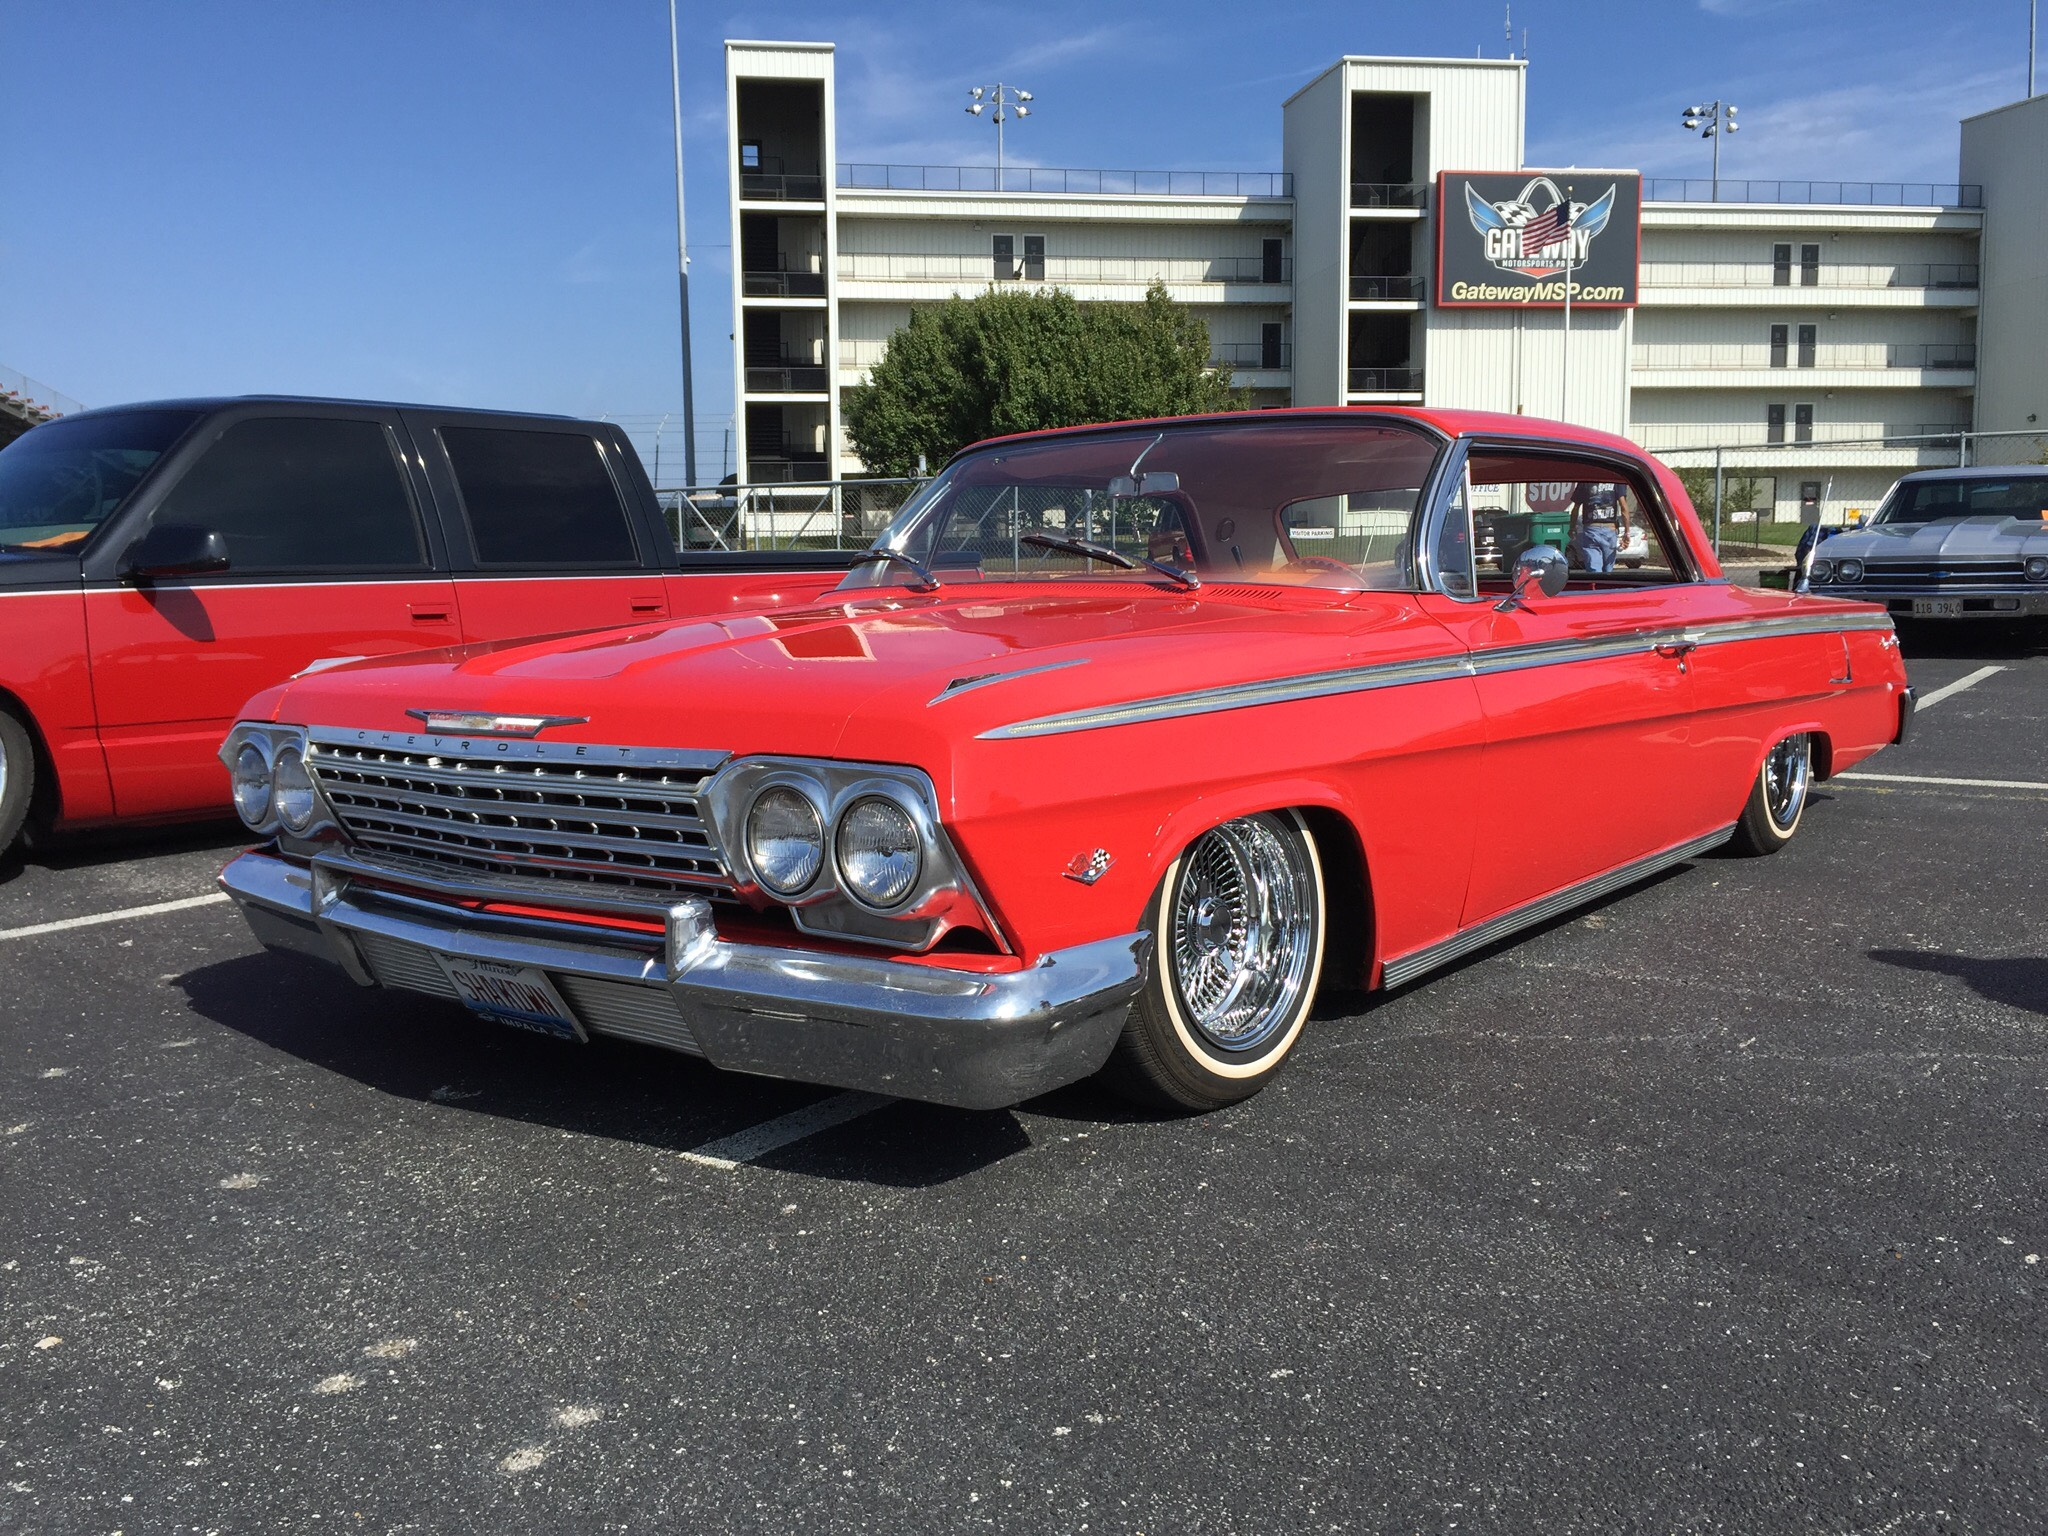 62 Impala With Hydraulics And Dayton Wire Or Spoke Rims In My Opinion This Was My Favorite Car